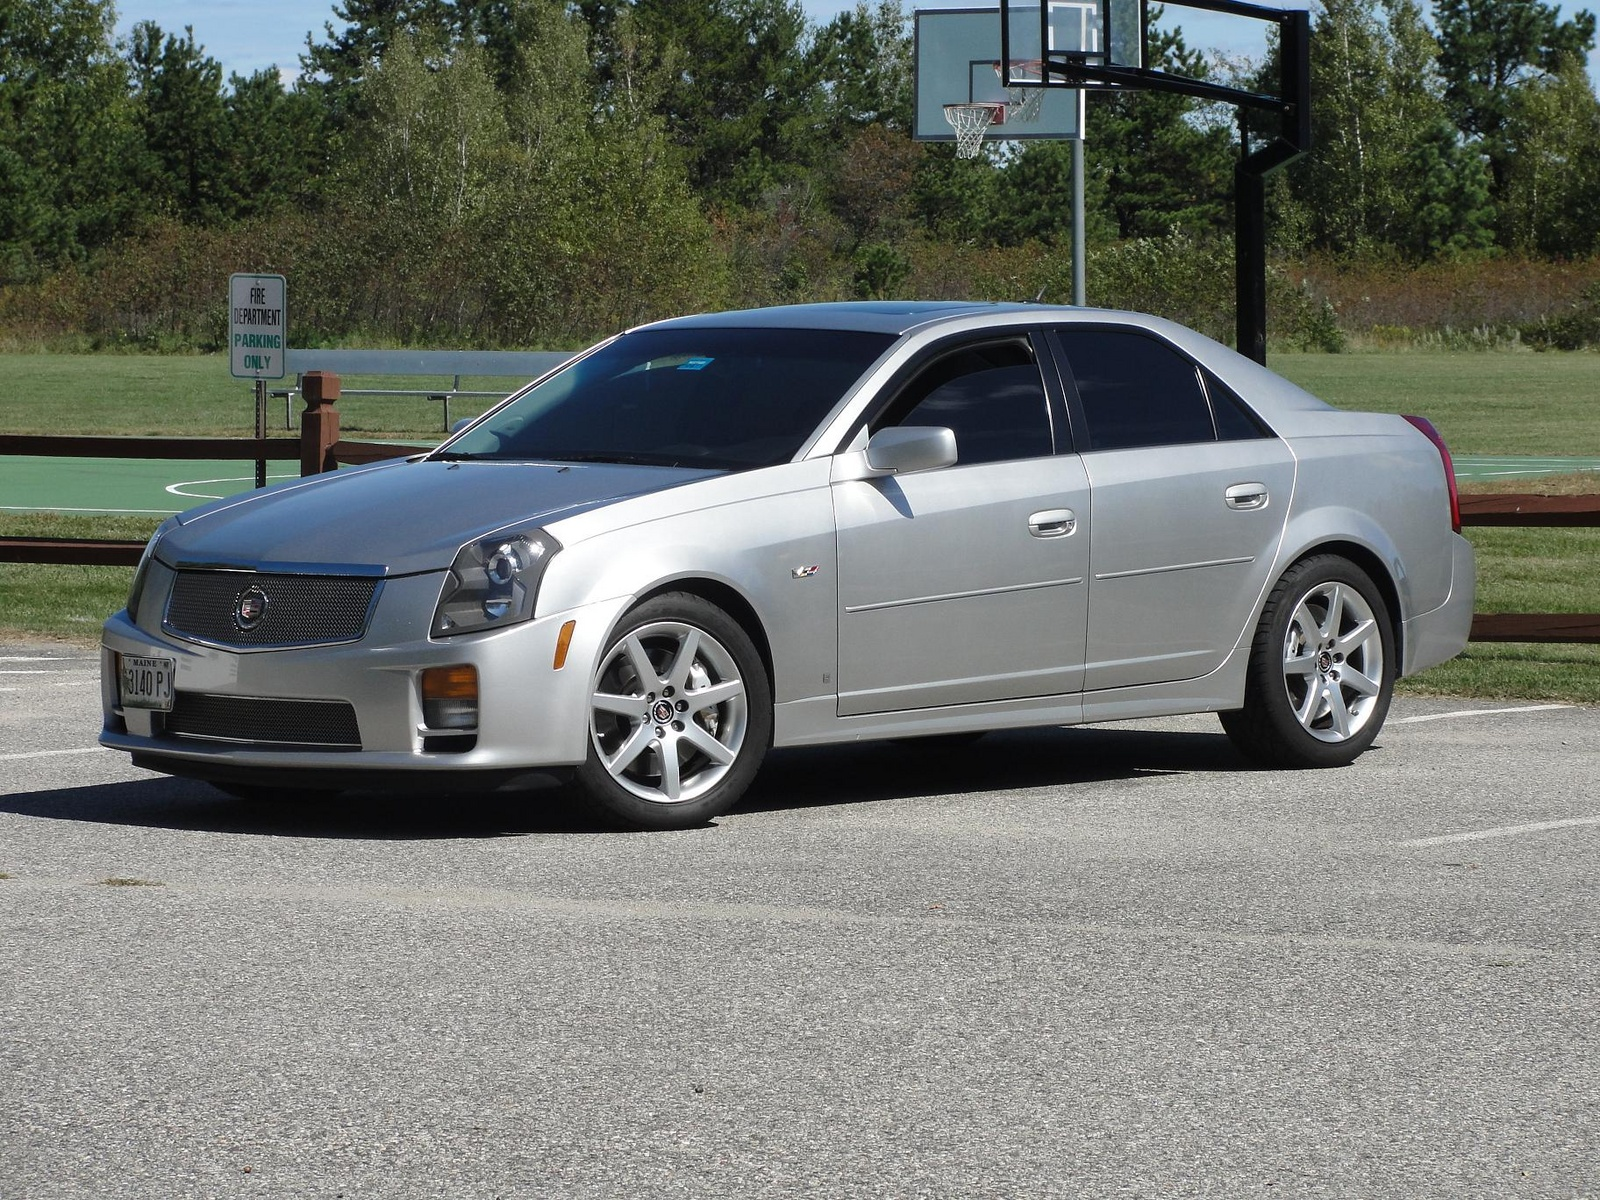 2006 cadillac cts v information and photos zombiedrive. Black Bedroom Furniture Sets. Home Design Ideas